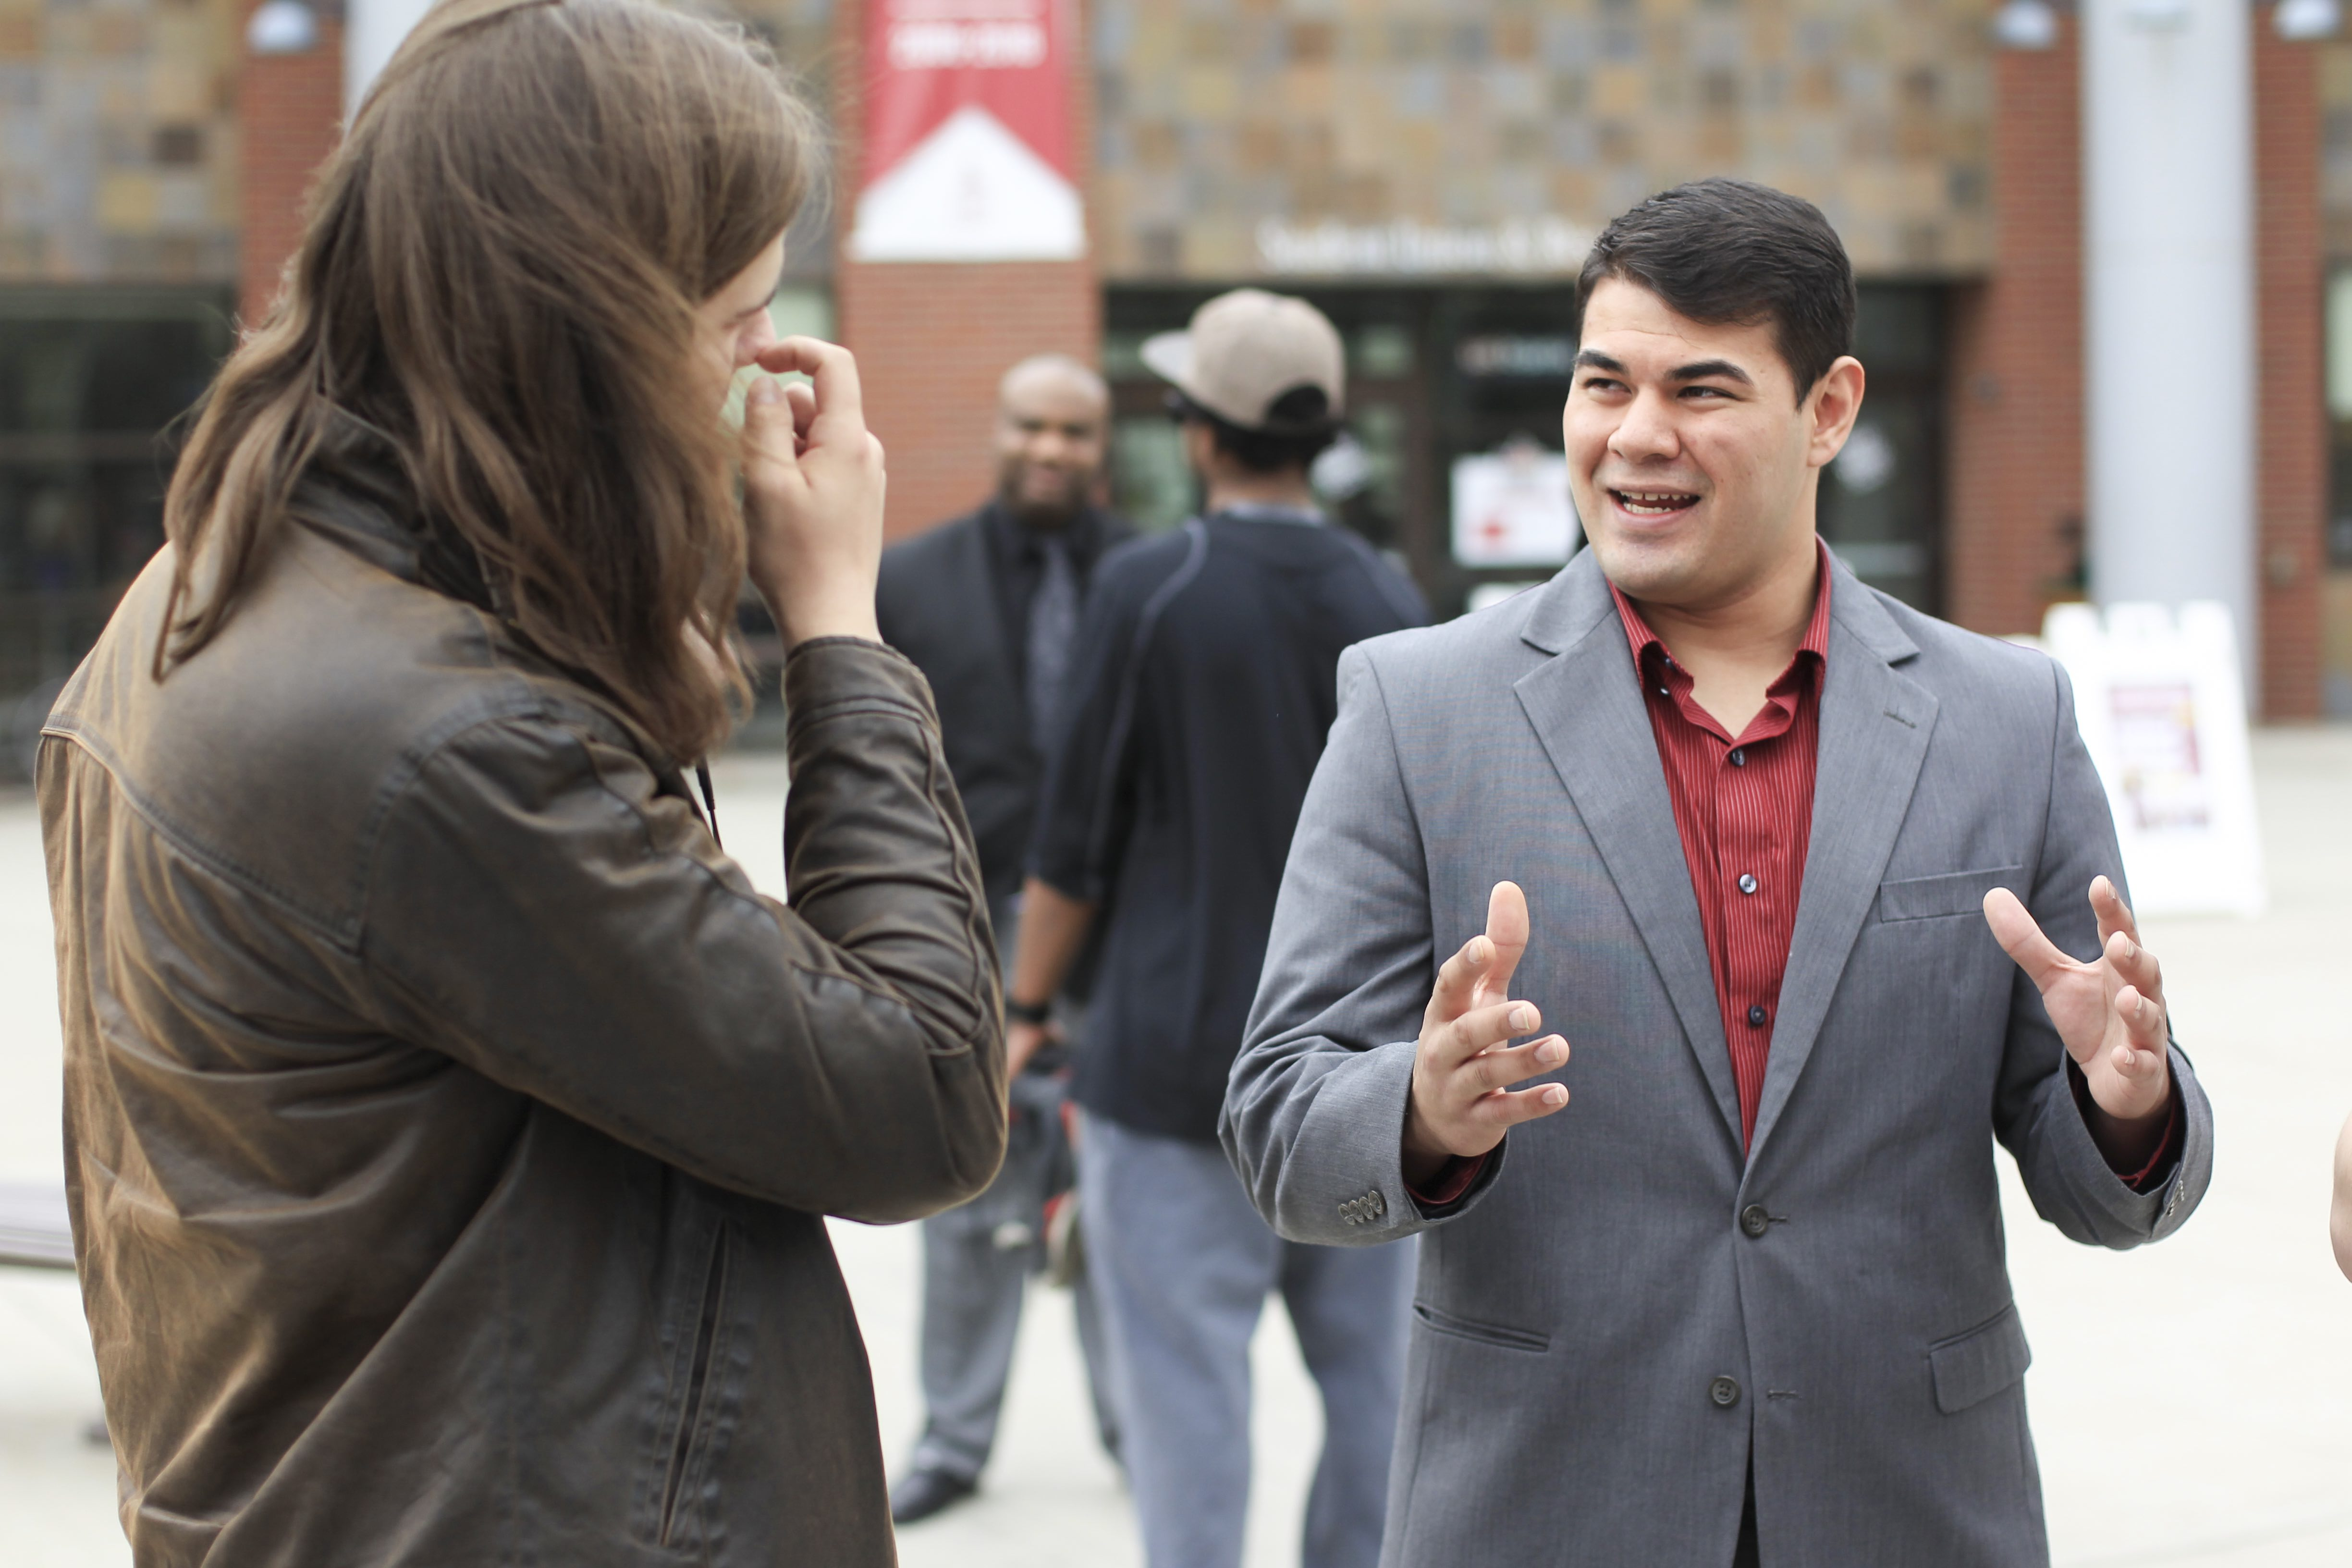 Current ASCWU VP of Legislative Affairs JR Siperly (right) speaks to junior broadcast journalism student Rune Torgersen, after a press conference on April 5.